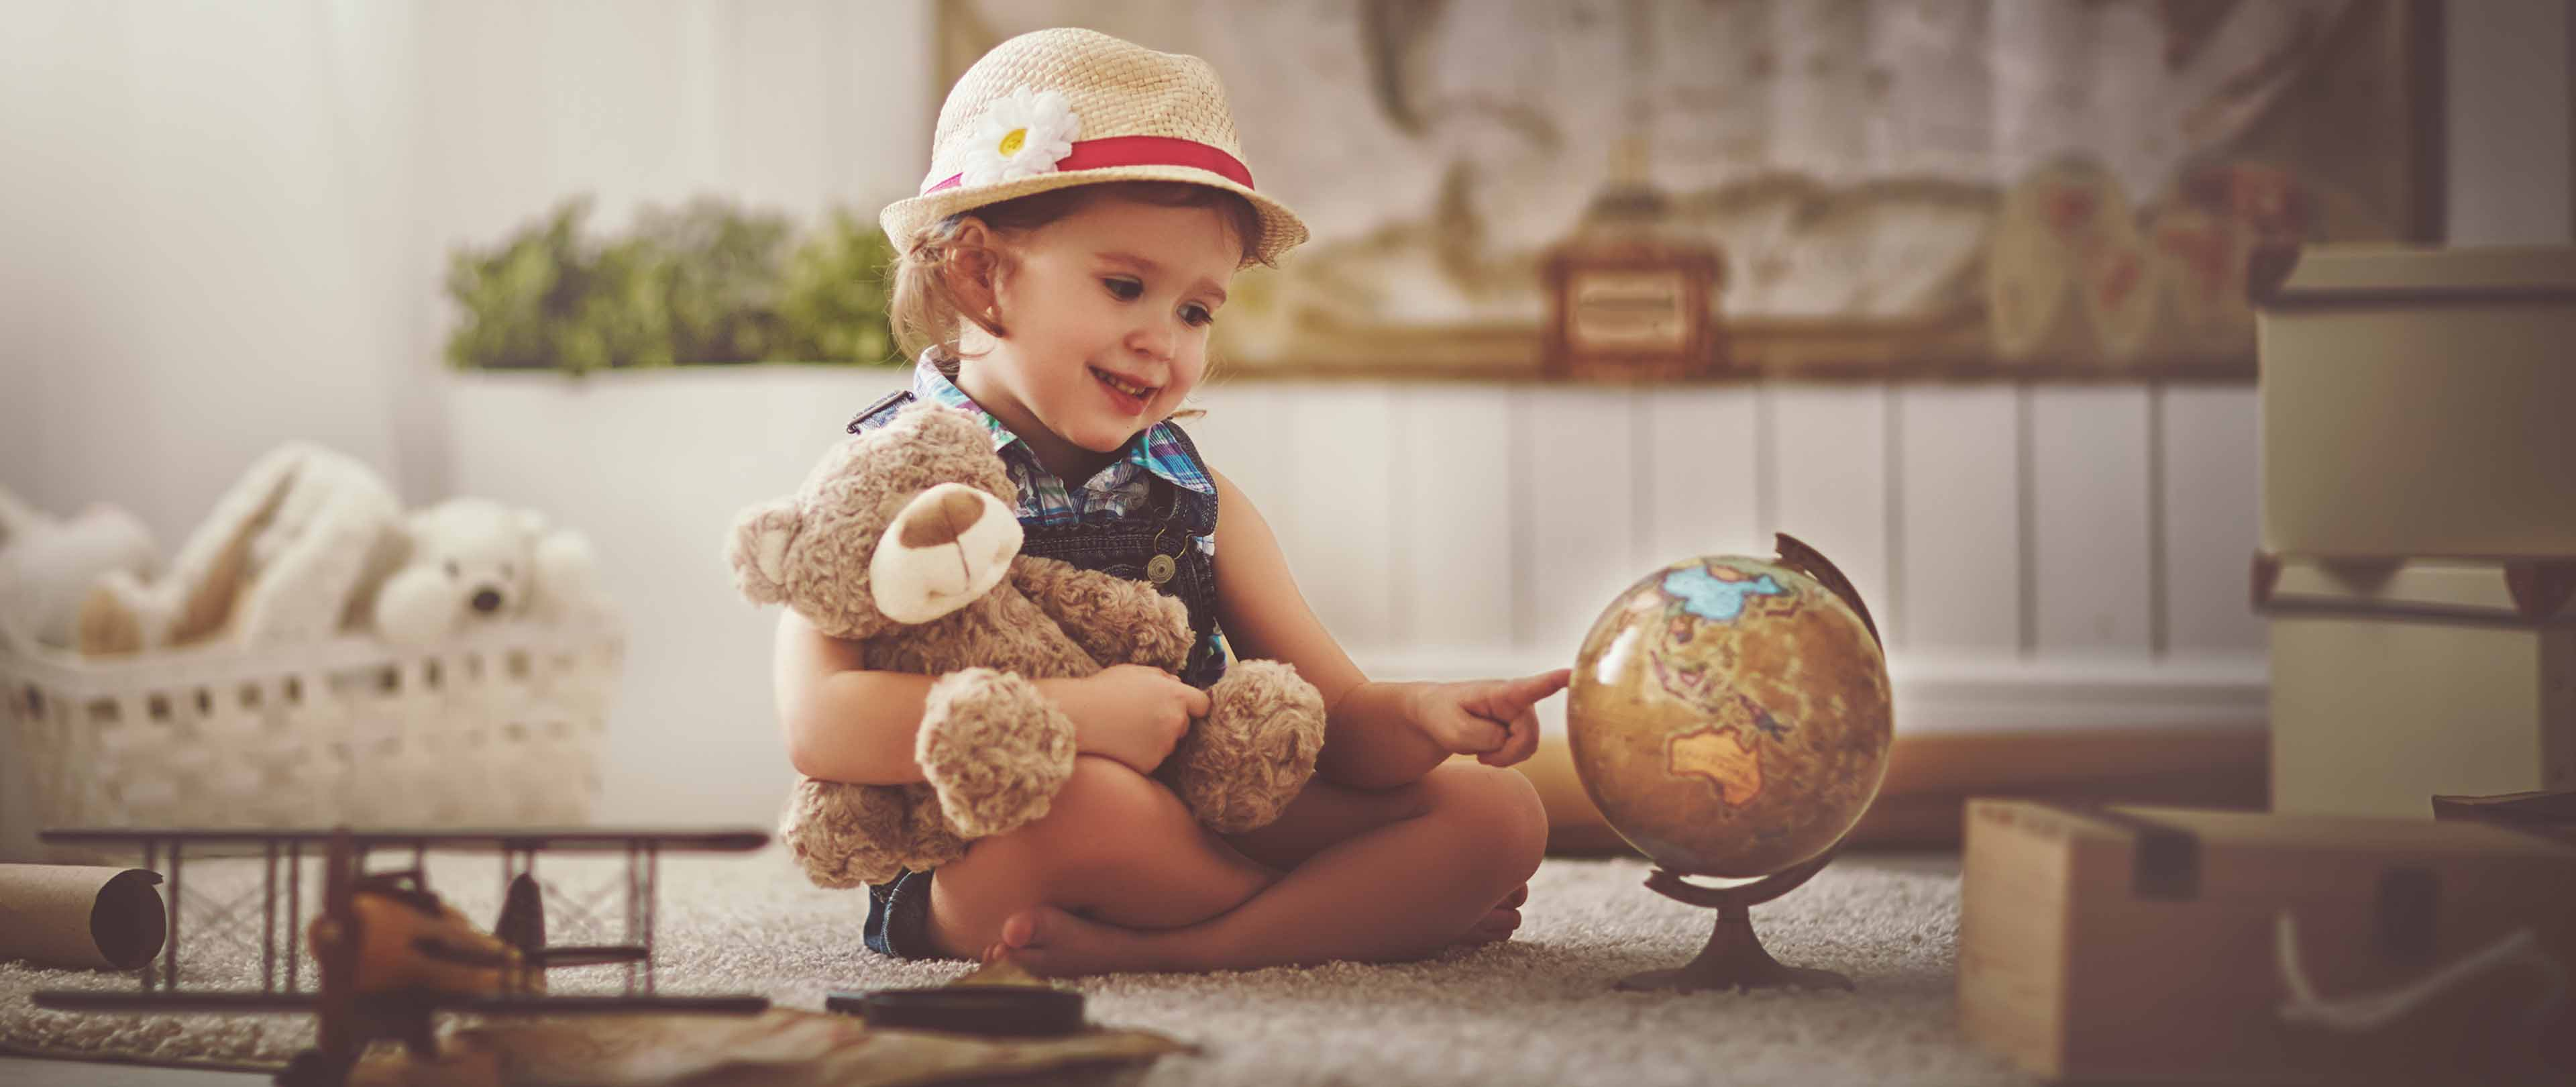 A guide to travelling with small children